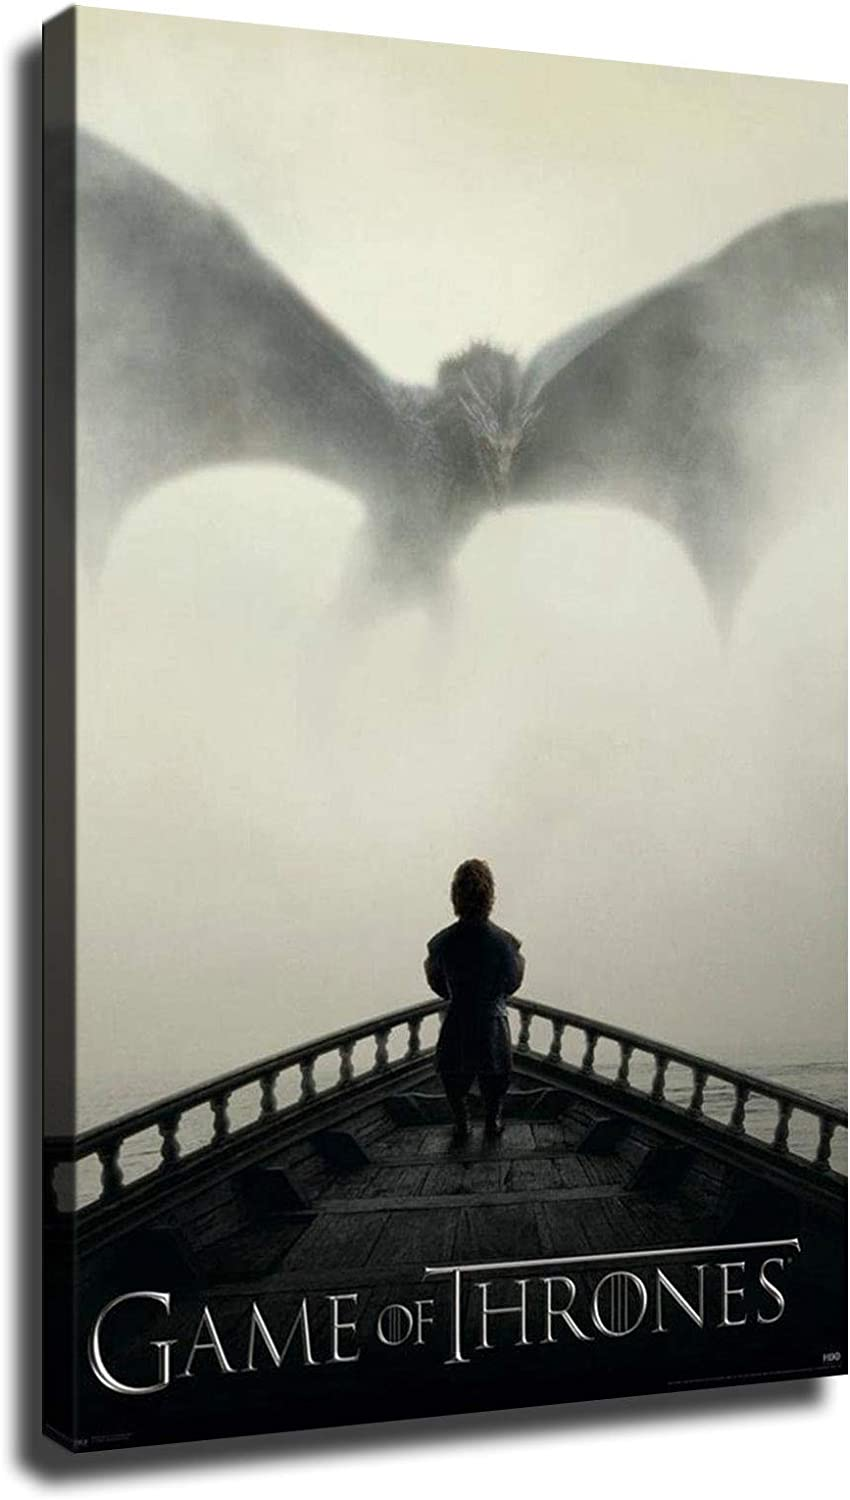 Small Demon Tyrion Lannister Game of Thrones Posters HD Canvas Print Wall Art Home Decor (16x24inch,Wooden Framed)